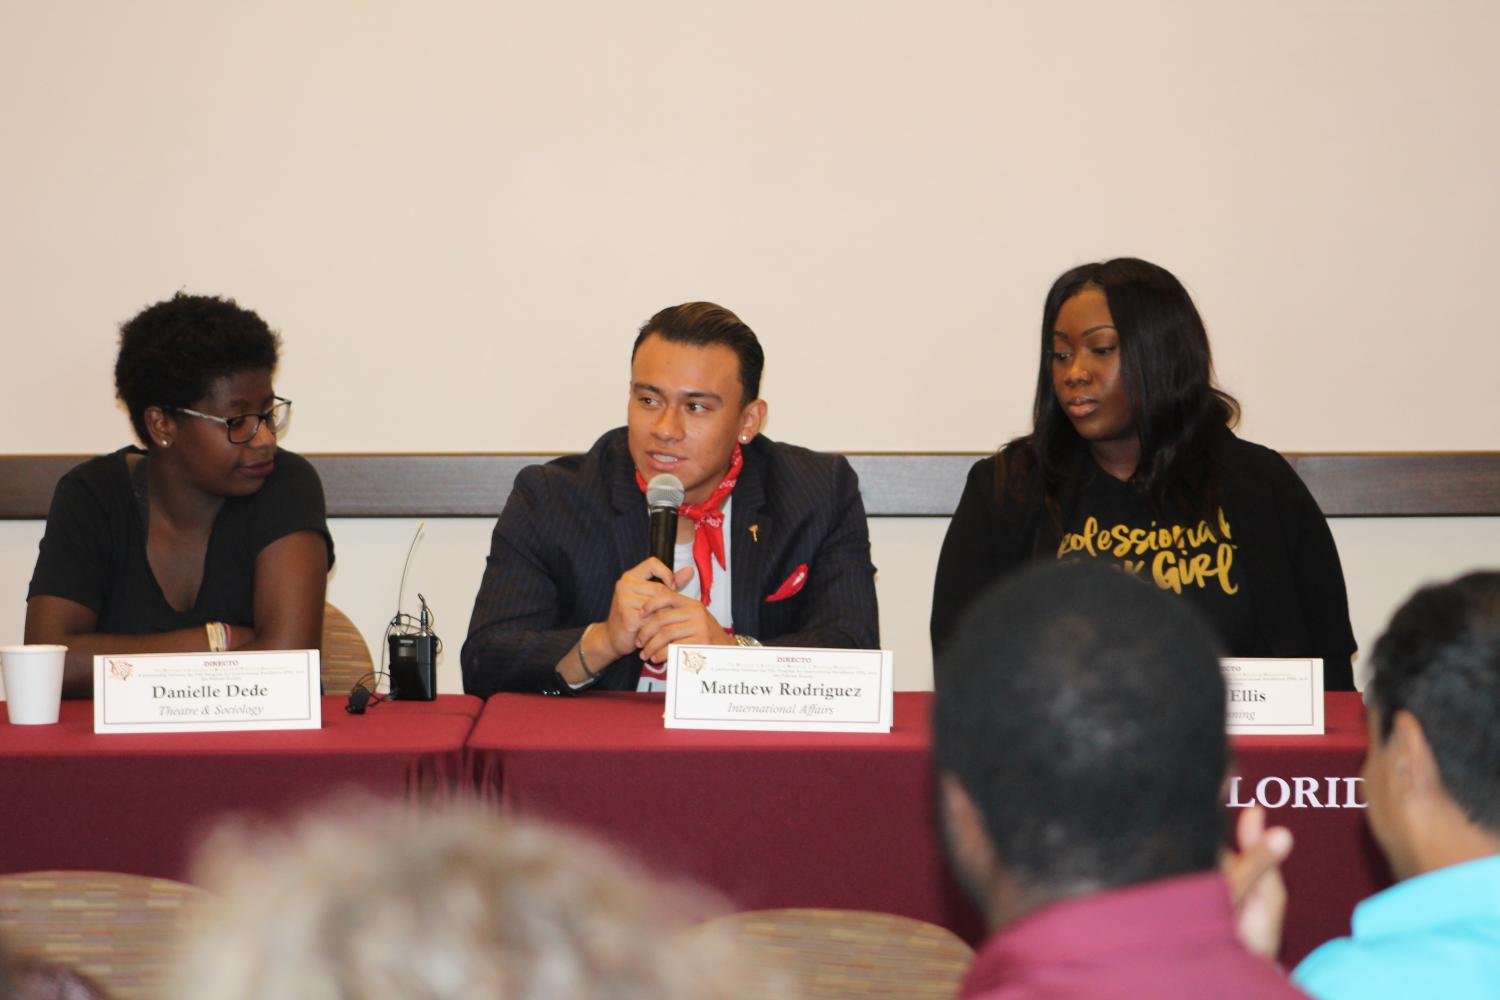 Matthew Rodriguez speaking in student panel at Inaugural Symposium